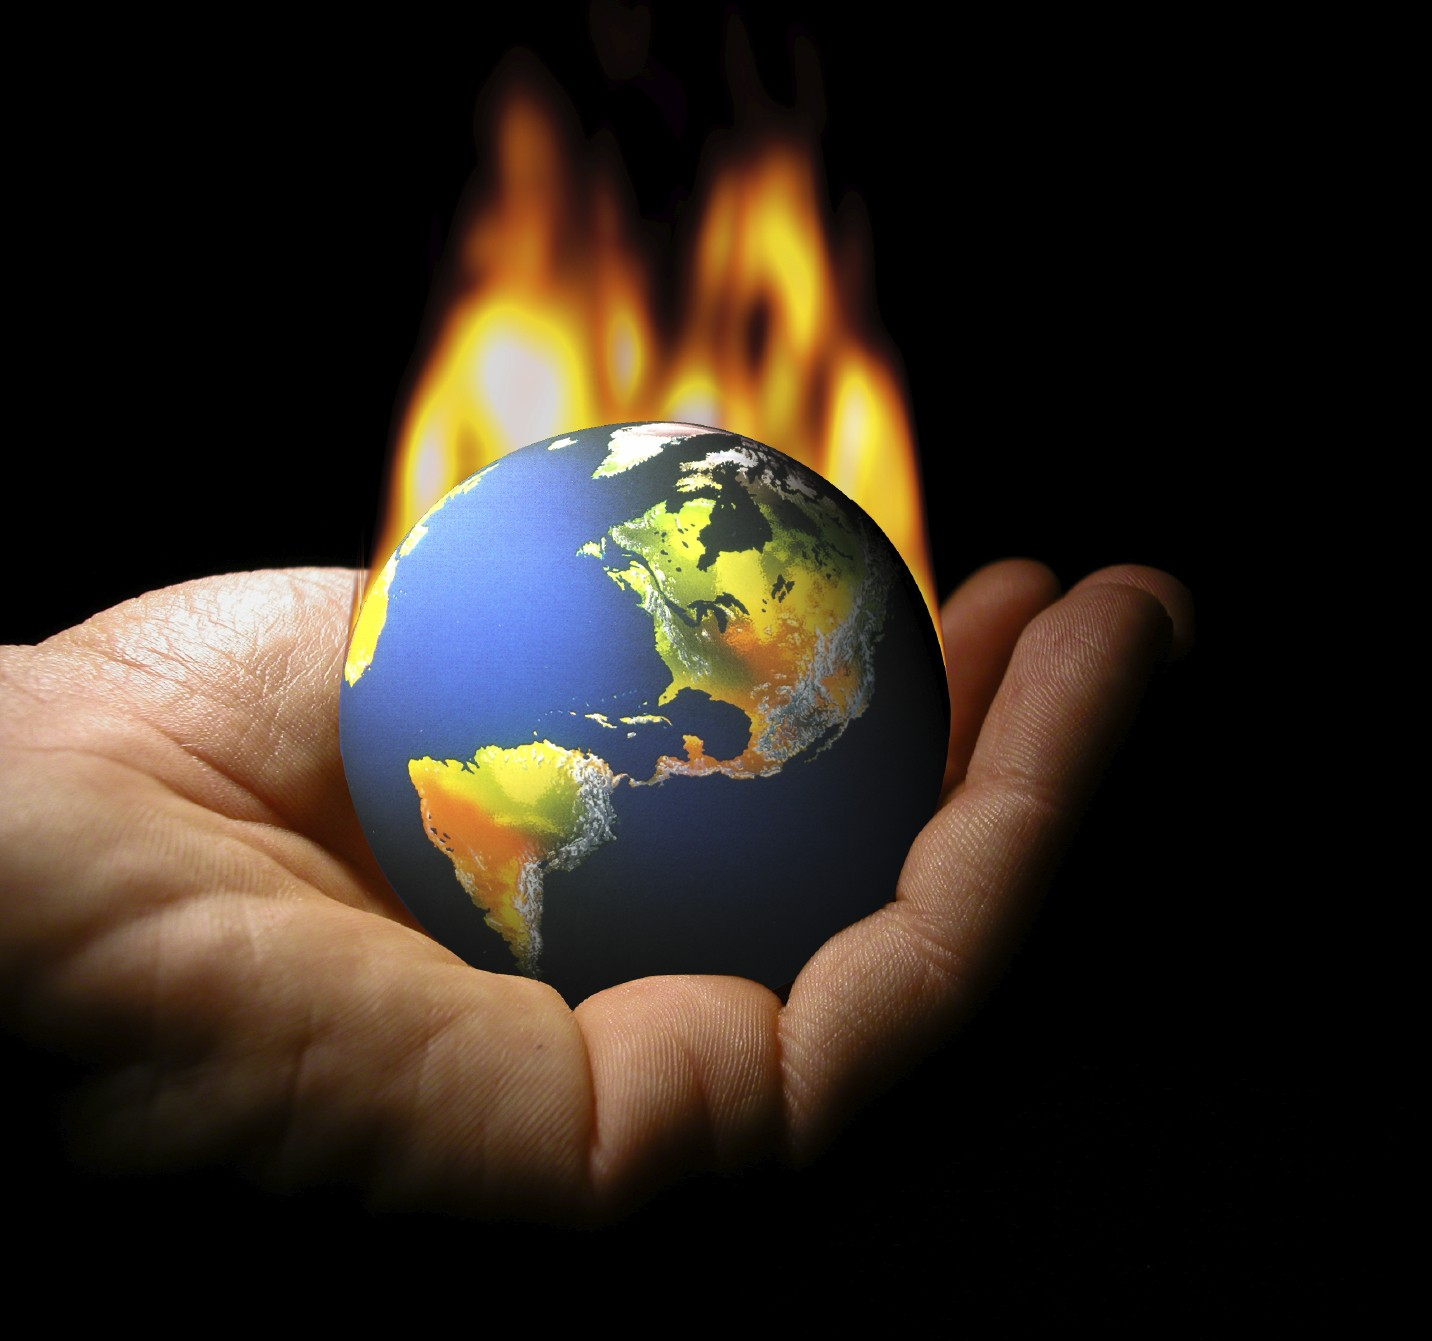 global change Global warming, also referred to as climate change, is the observed century-scale rise in the average temperature of the earth's climate system and its related effects.